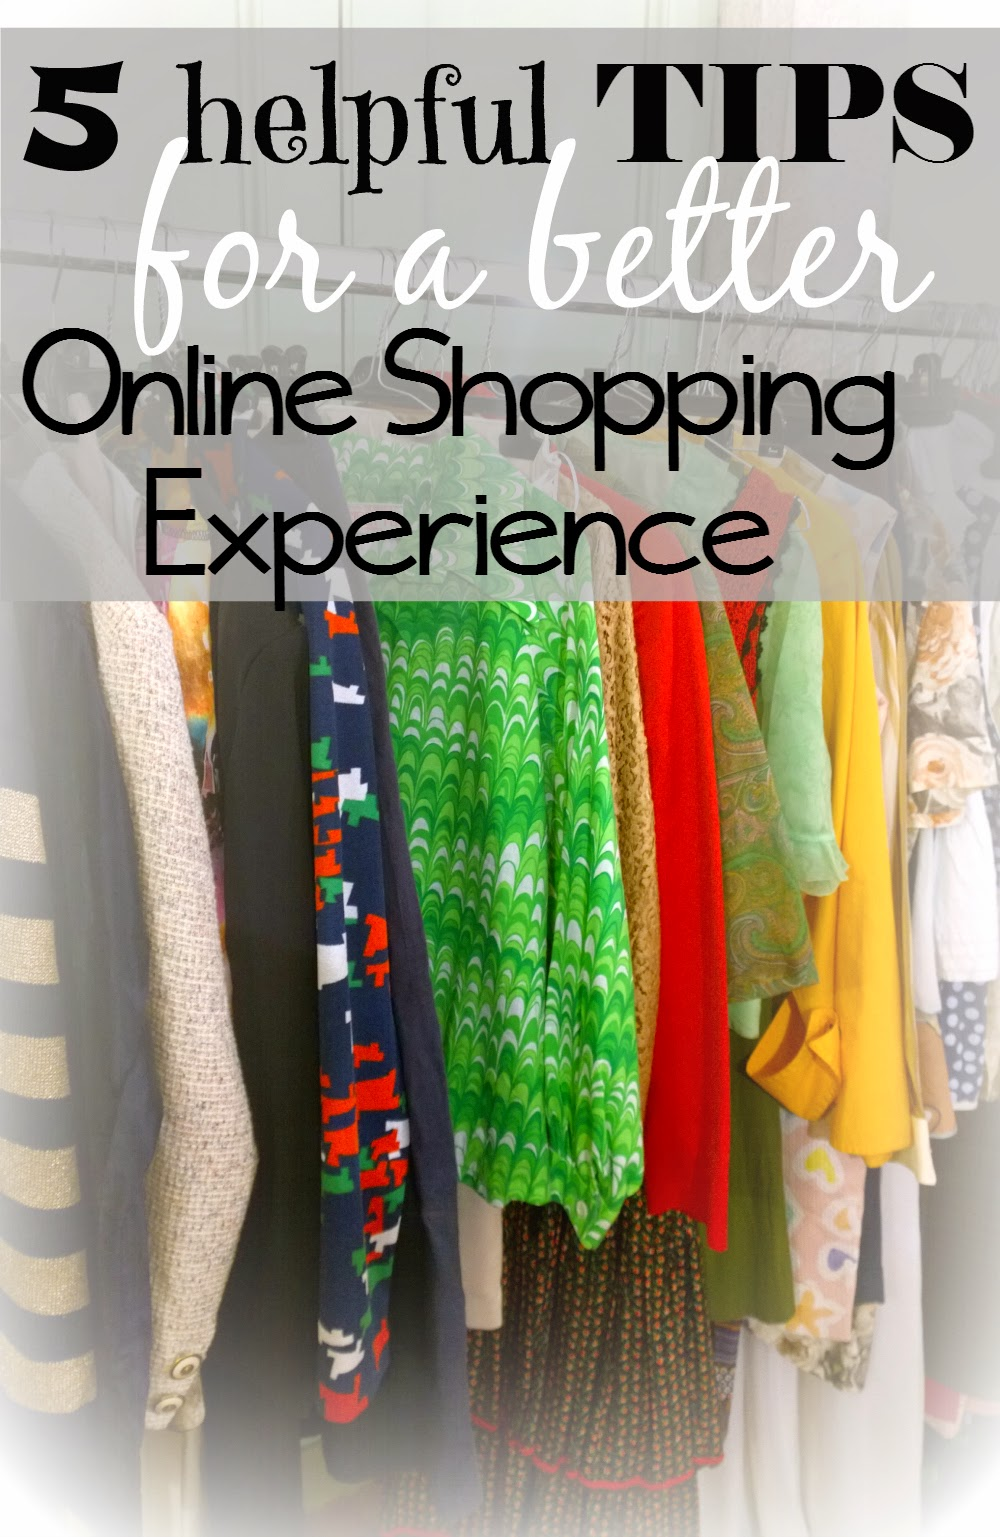 Tips for Online Shopping to help limit mispurchases for items you cannot touch or try on before you pay | 5 Tips for better Online Shopping || Funky Jungle, fashion and personal style blog